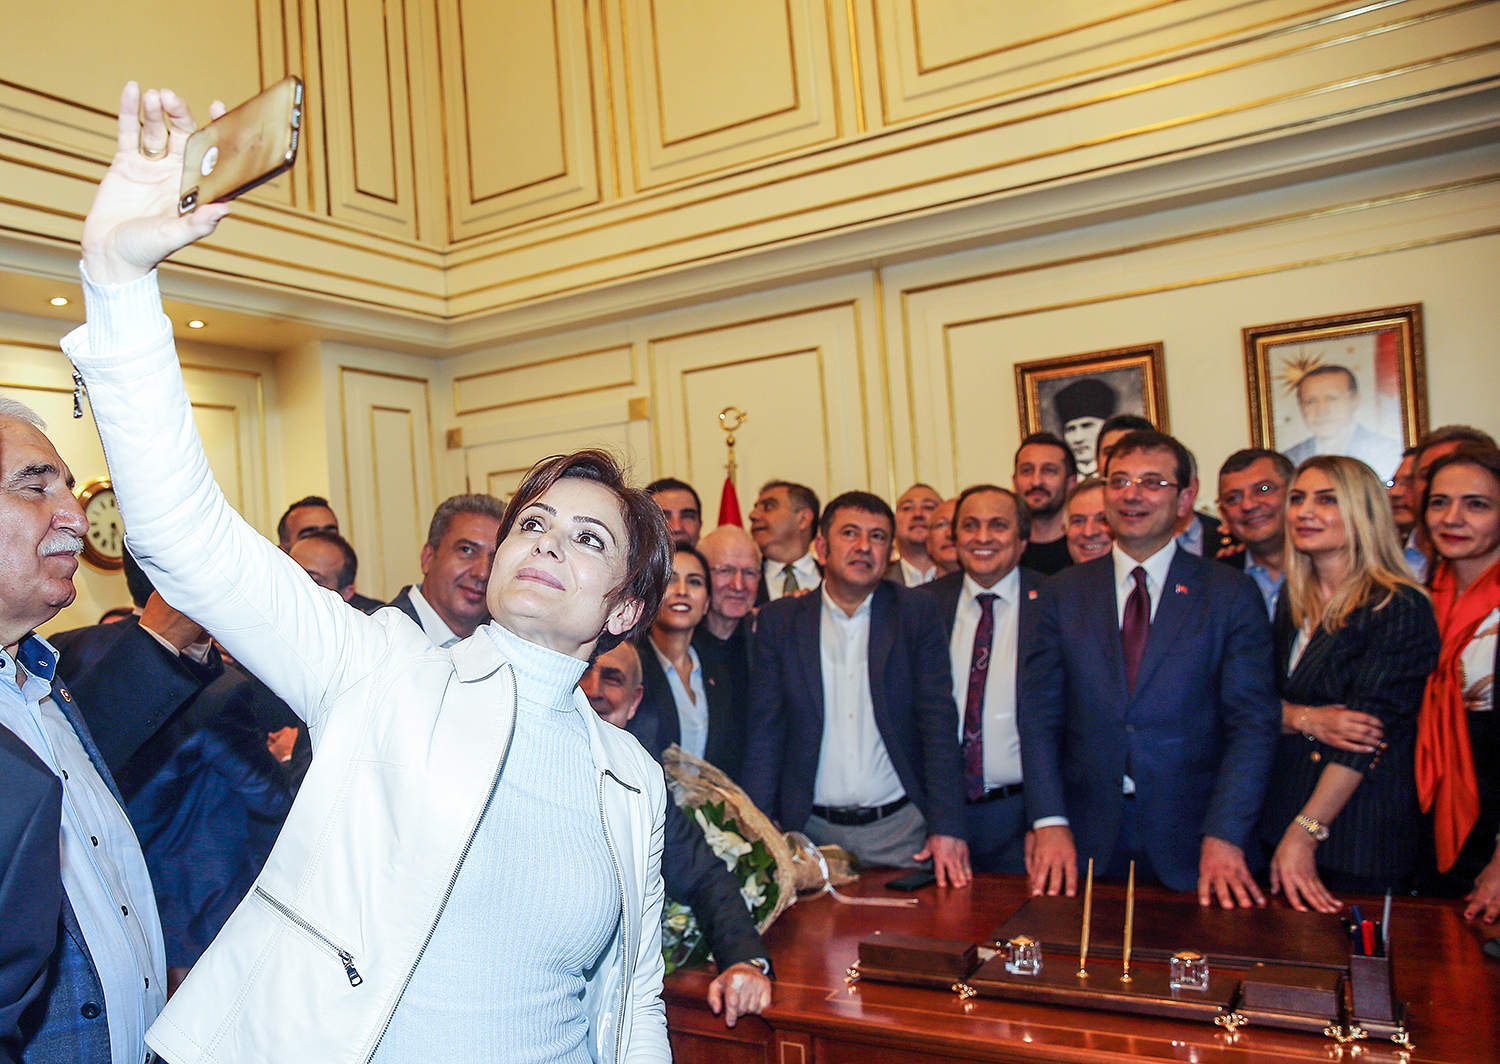 Kaftancioglu takes a selfie as Istanbul mayor-elect Ekrem Imamoglu poses after taking his post from the former Istanbul mayor during the handover ceremony at Istanbul Metropolitan Municipality building on April 17, 2019.